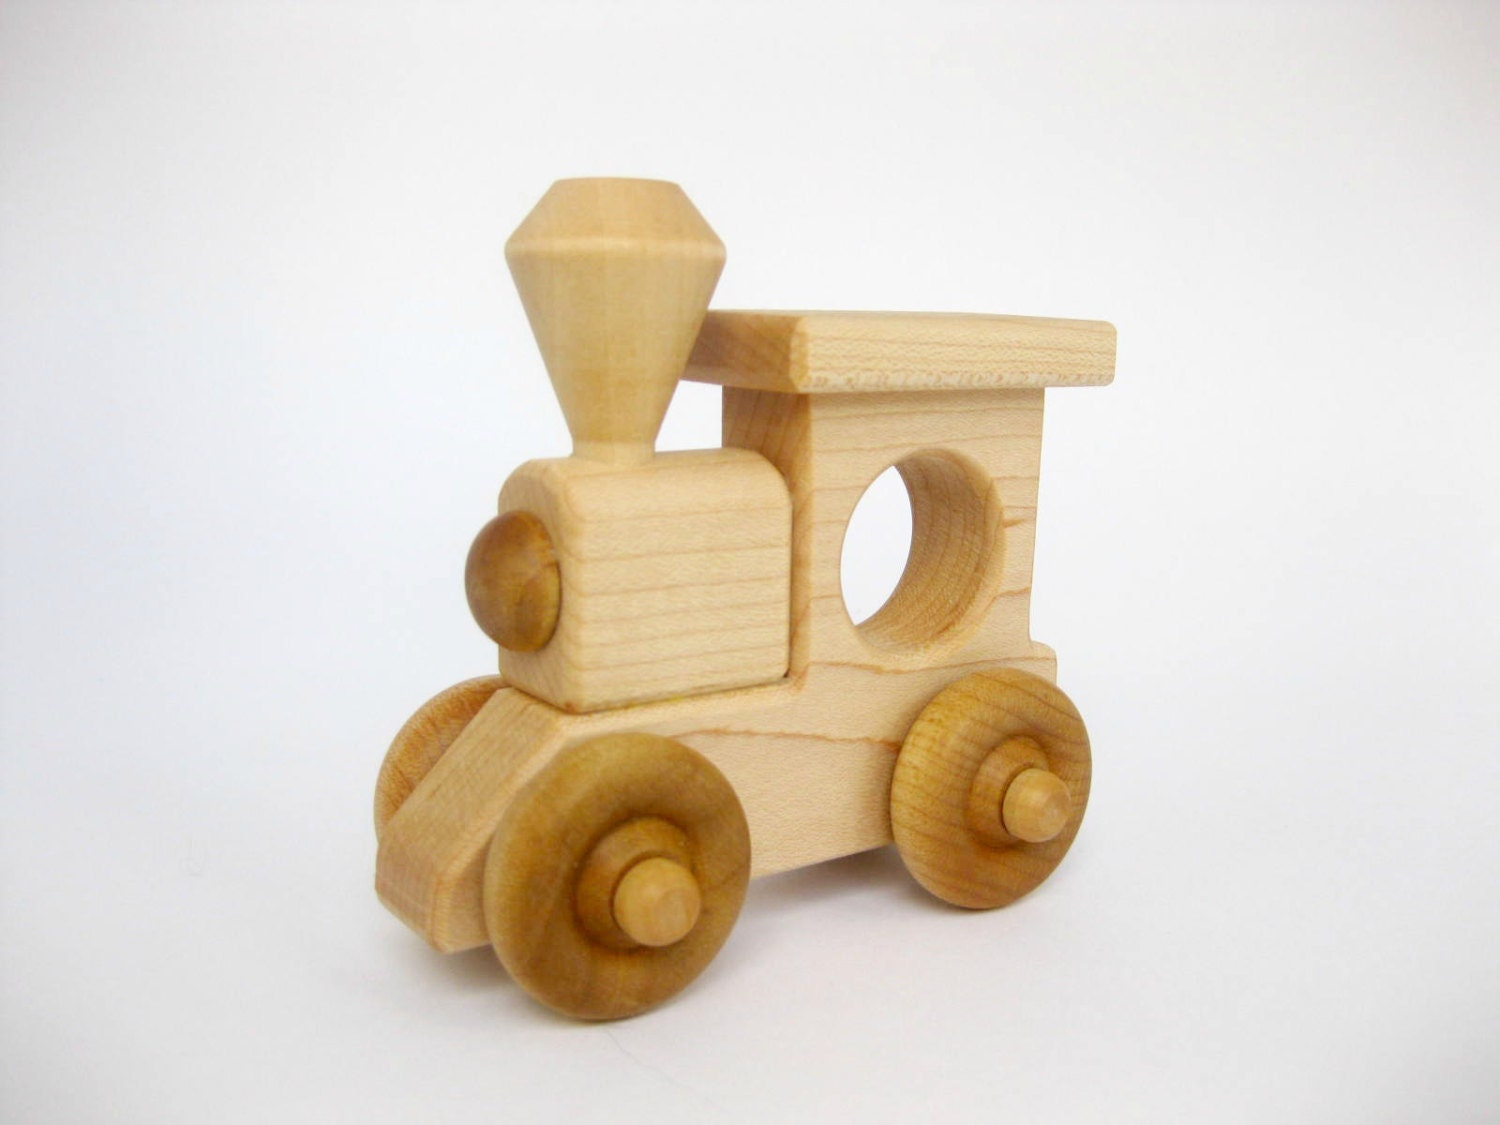 Wooden Toy Trains : Wood toy train engine eco friendly wooden